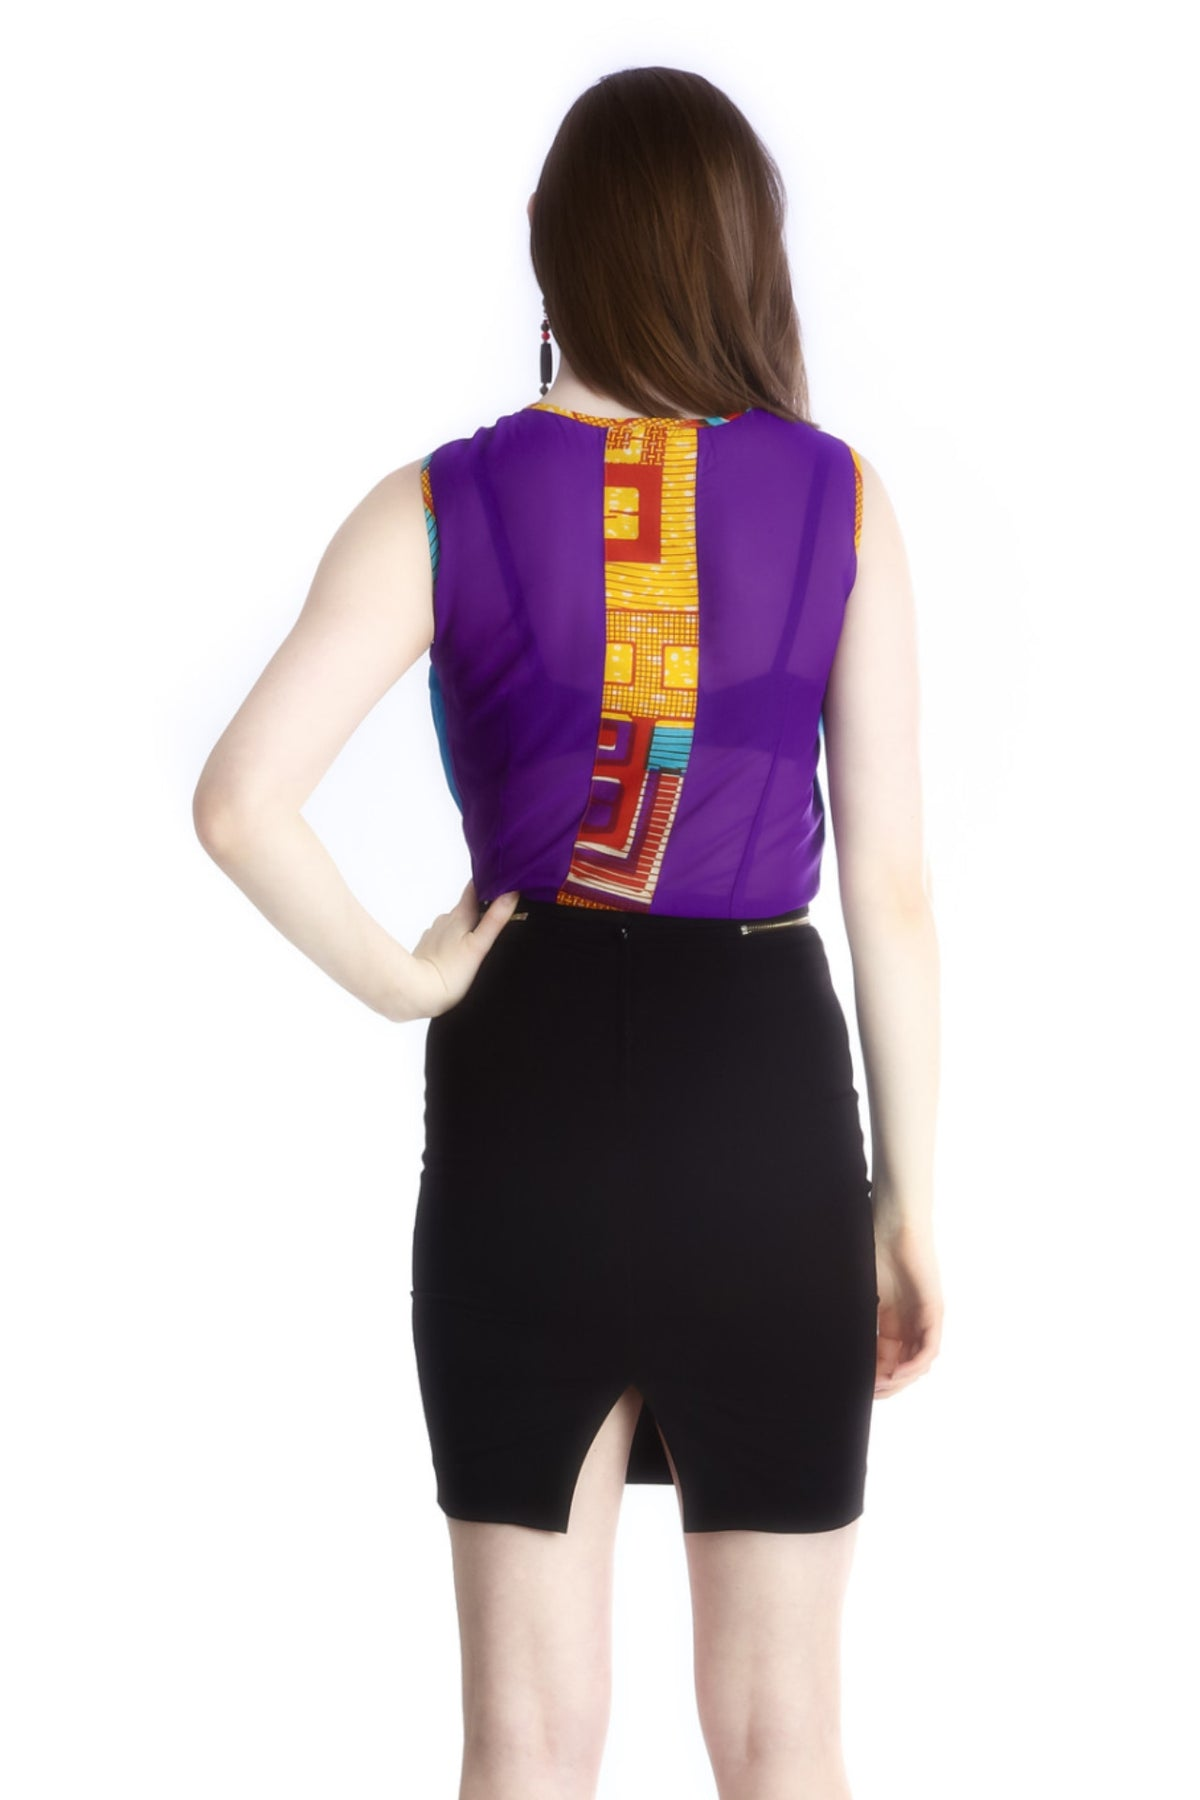 Shop Kuwala.co for the Fe-Ijeoma Crop-top (Blue/Purple) by Ajepomaa Design Gallery